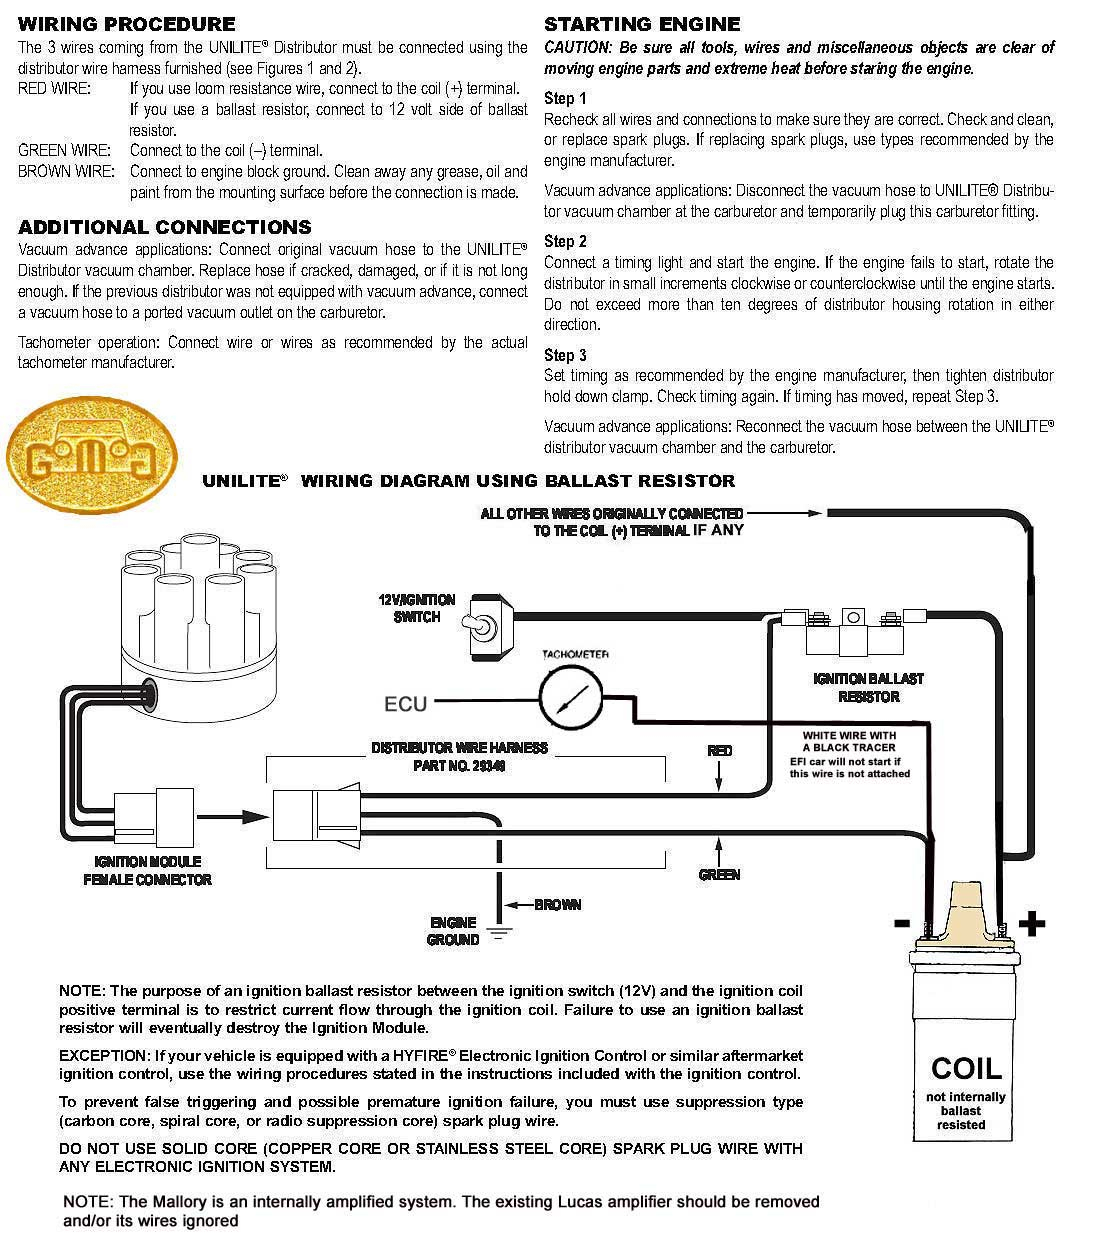 Mallory Magnetic Breakerless Distributor Wiring Diagram